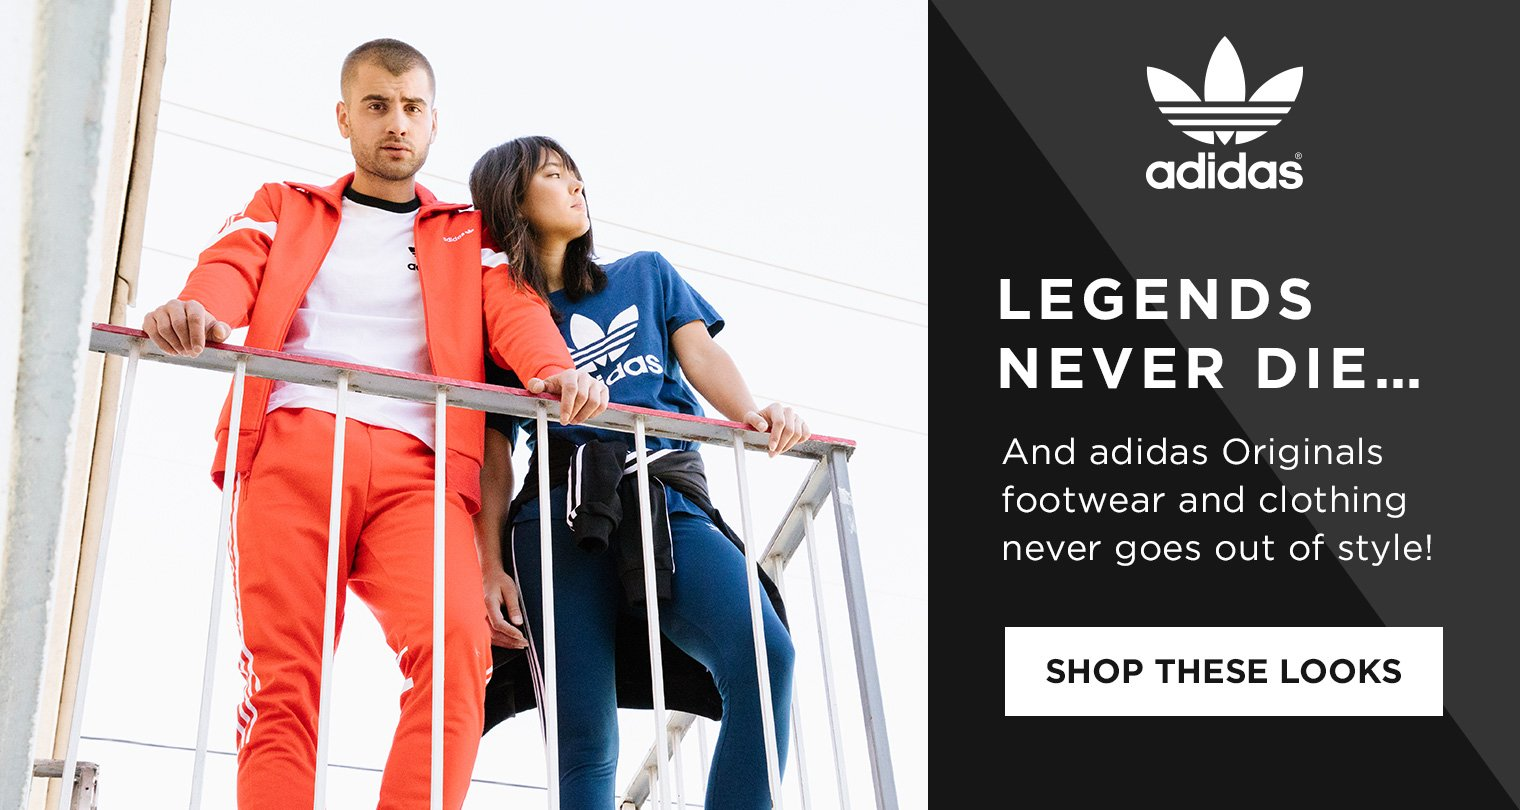 Adidas Legends Never Die Look Book